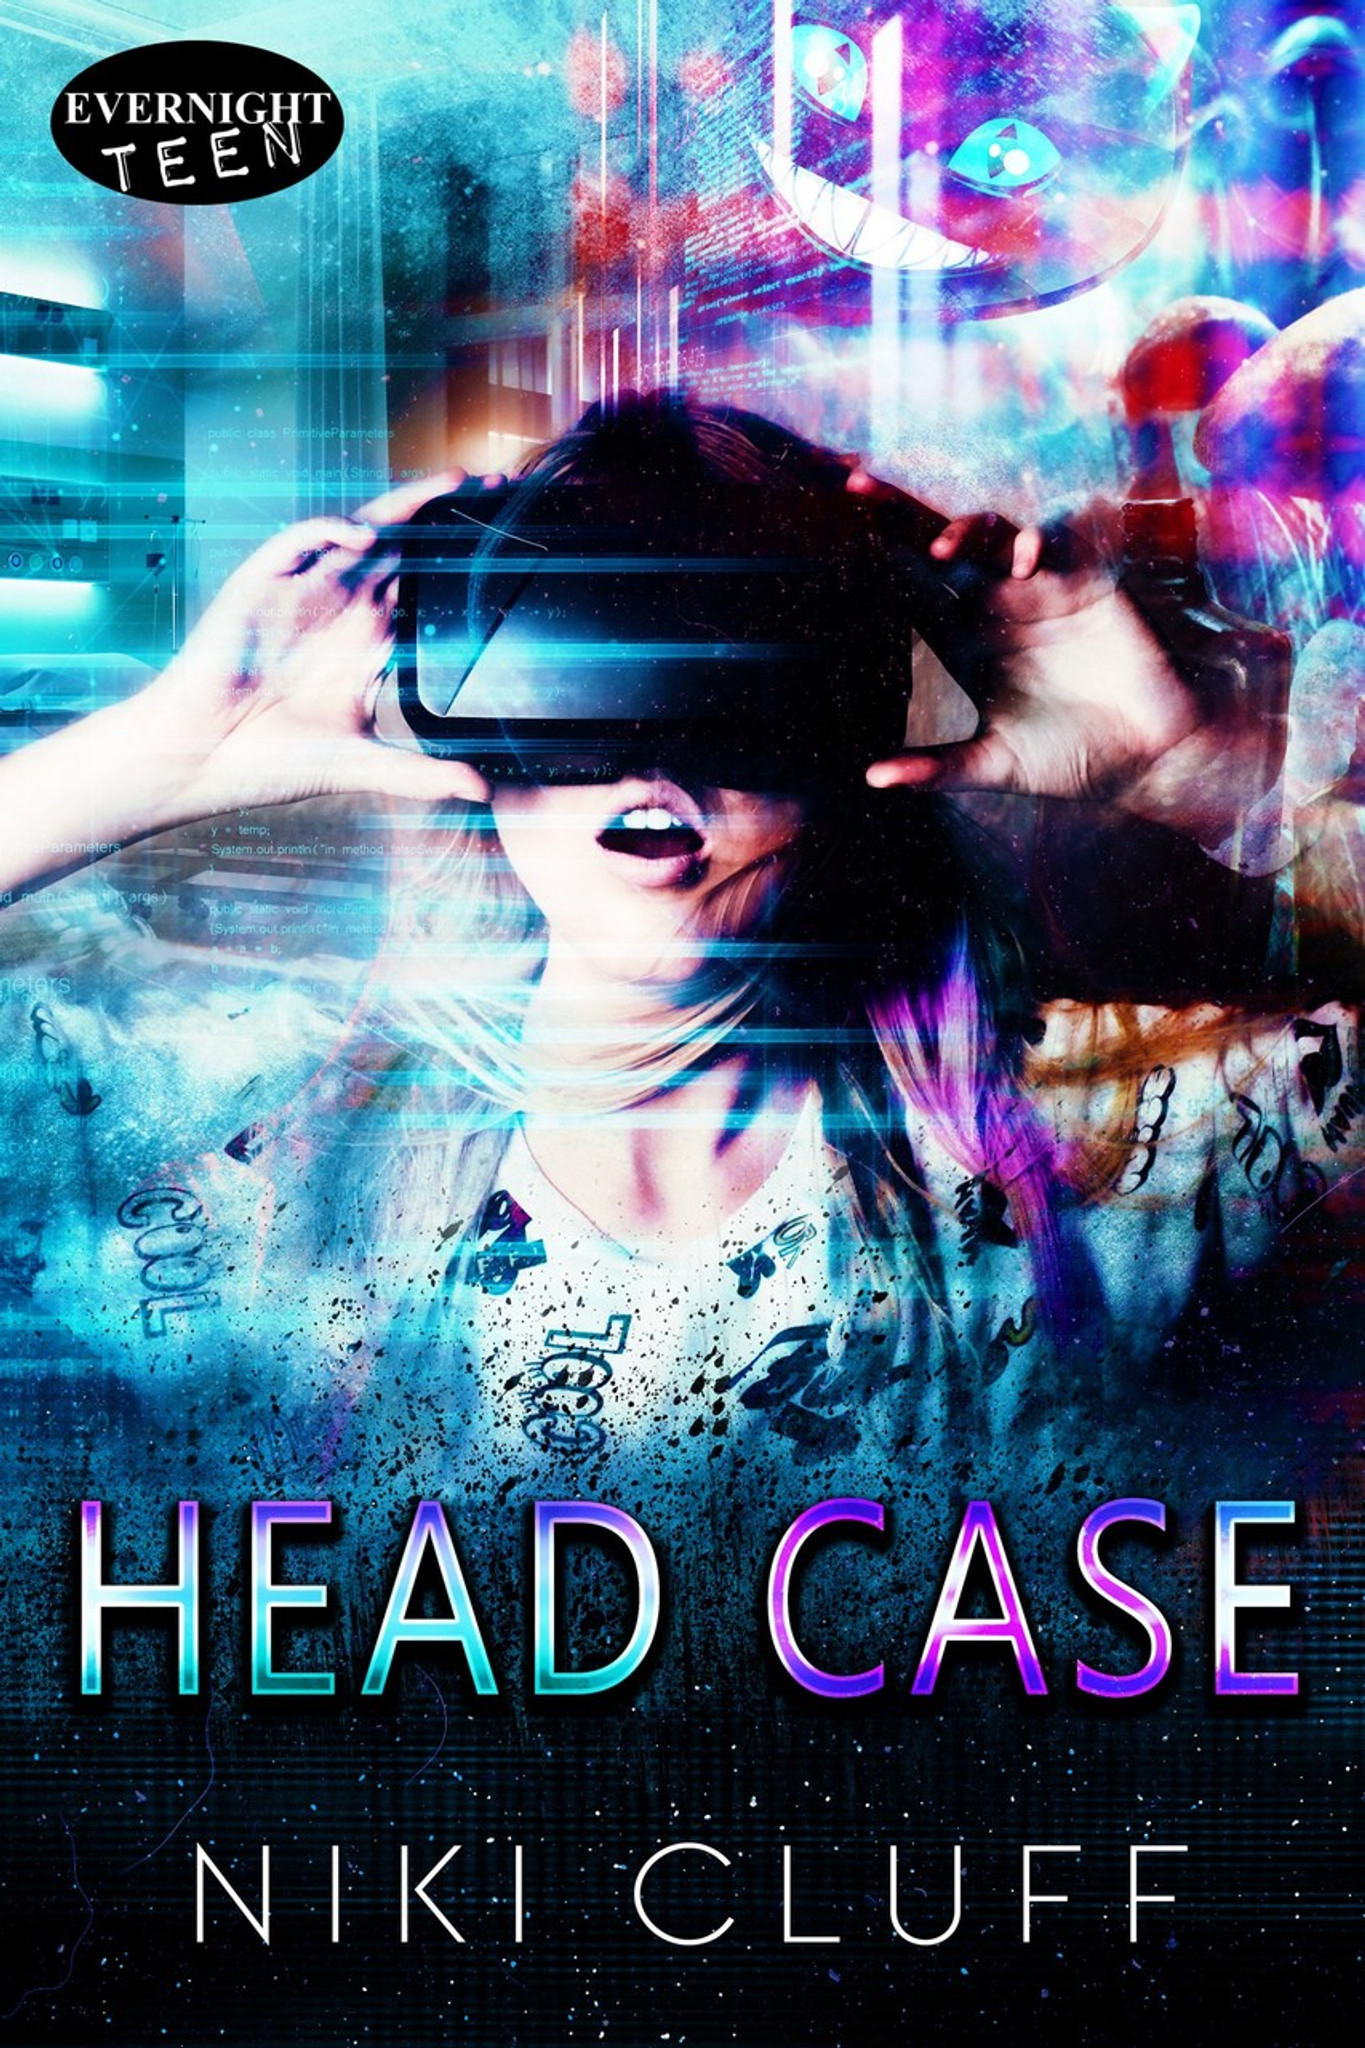 Head Case by Niki Cluff